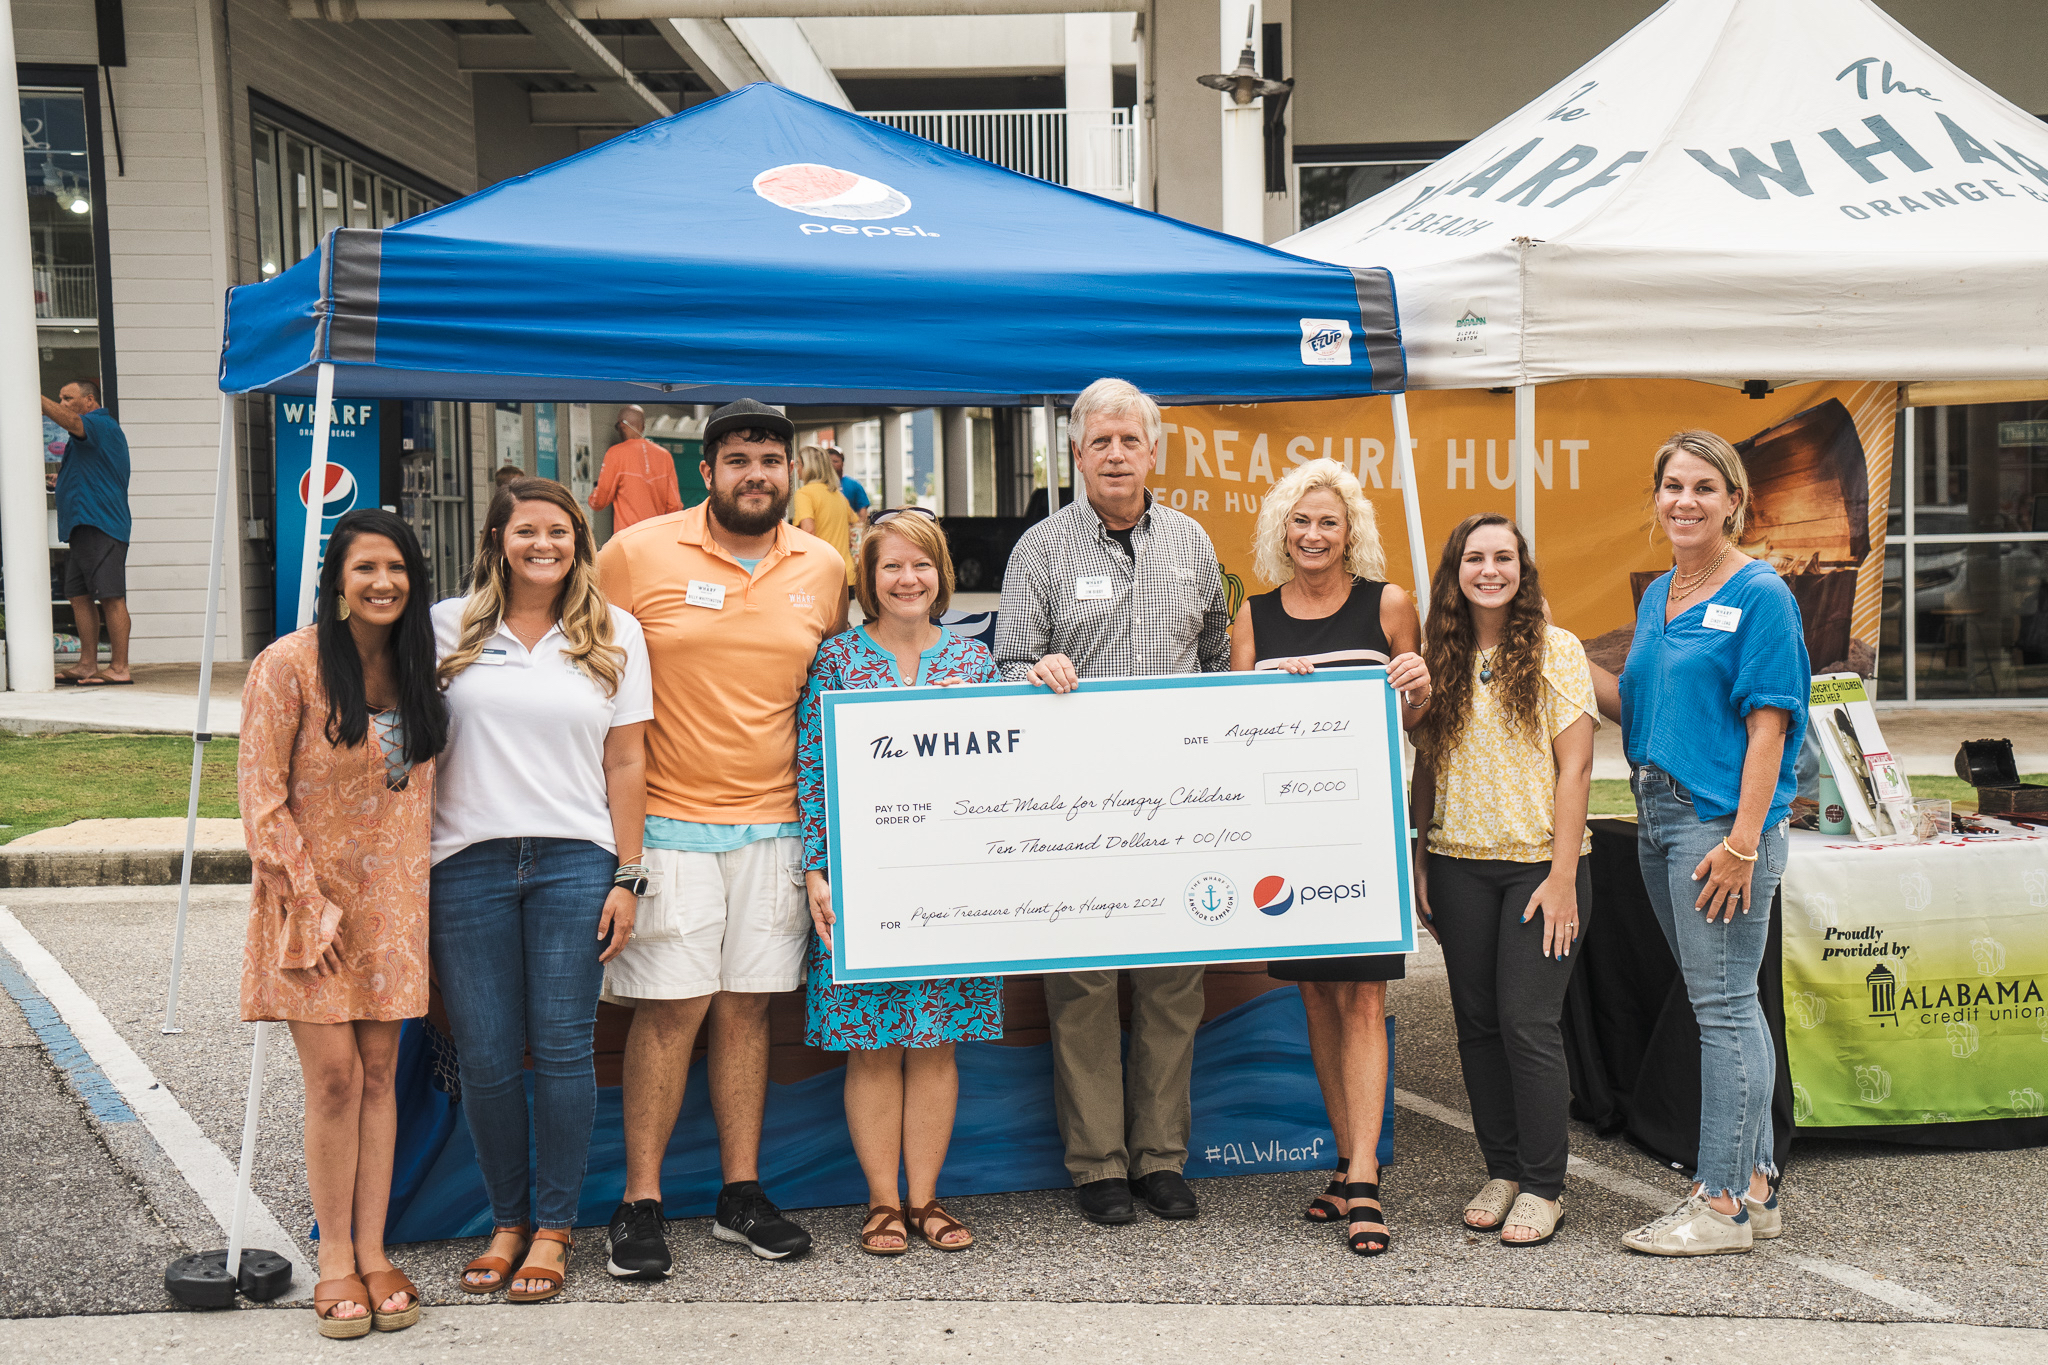 The Wharf, Pepsi Donate $10k to Help Feed Hungry Children in Alabama